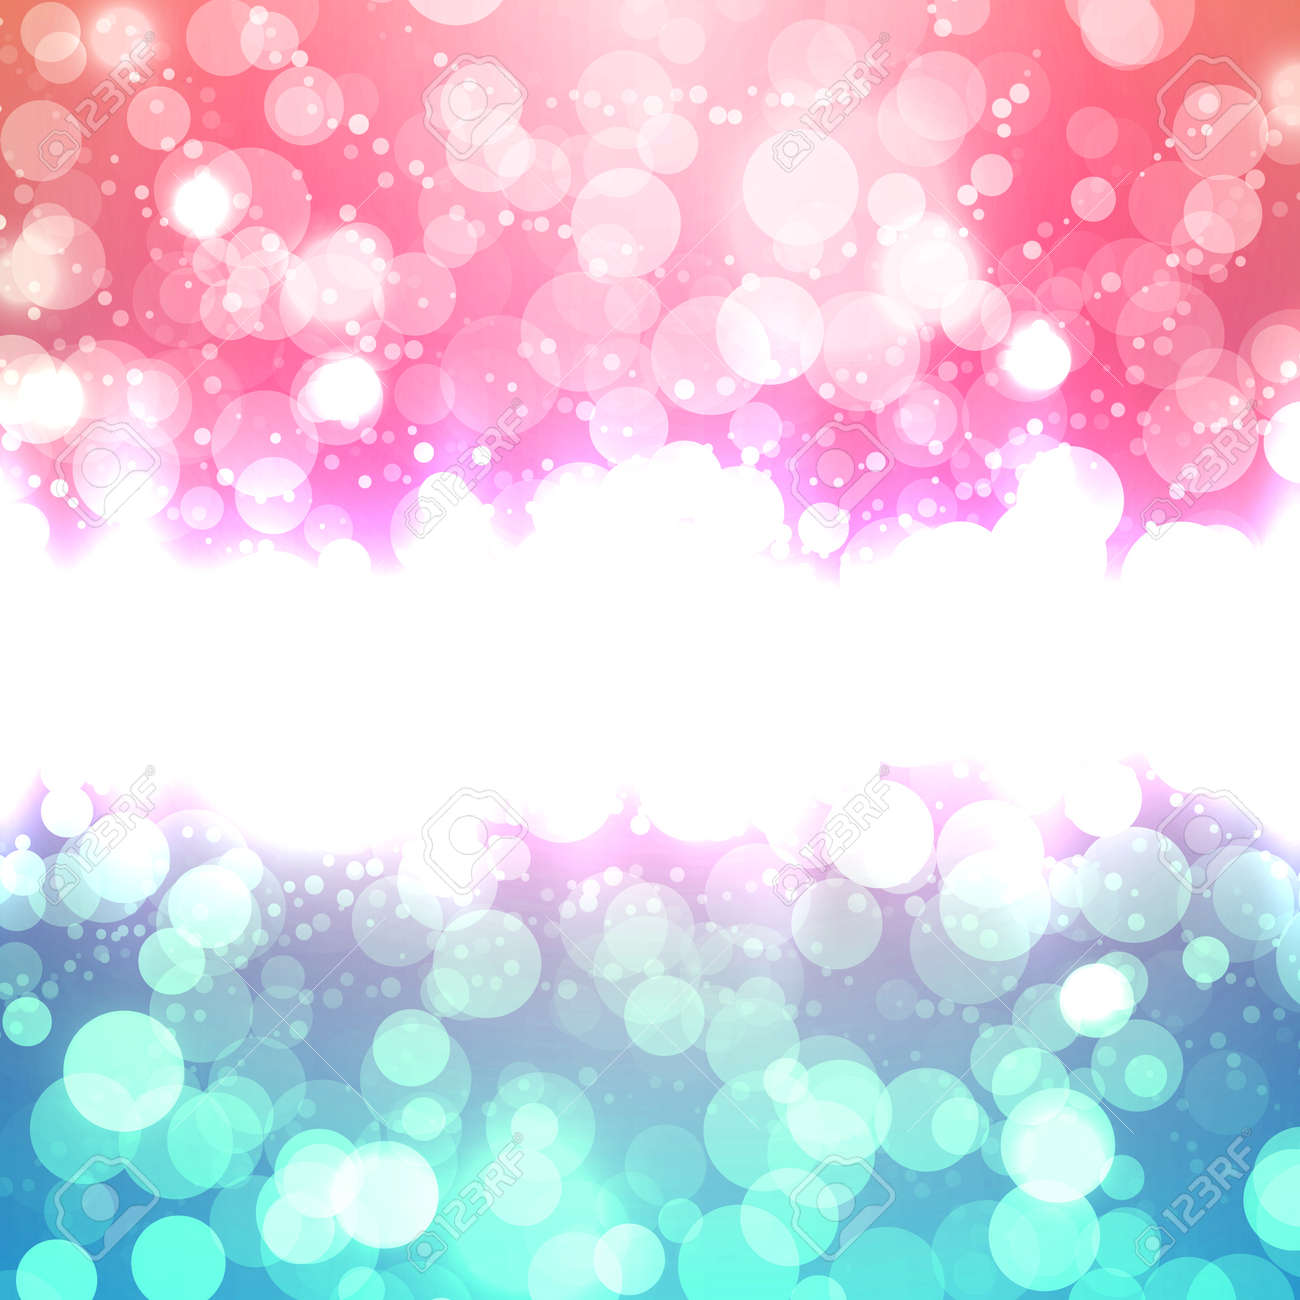 Blurred Christmas Vector Background Stock Vector - 22952807